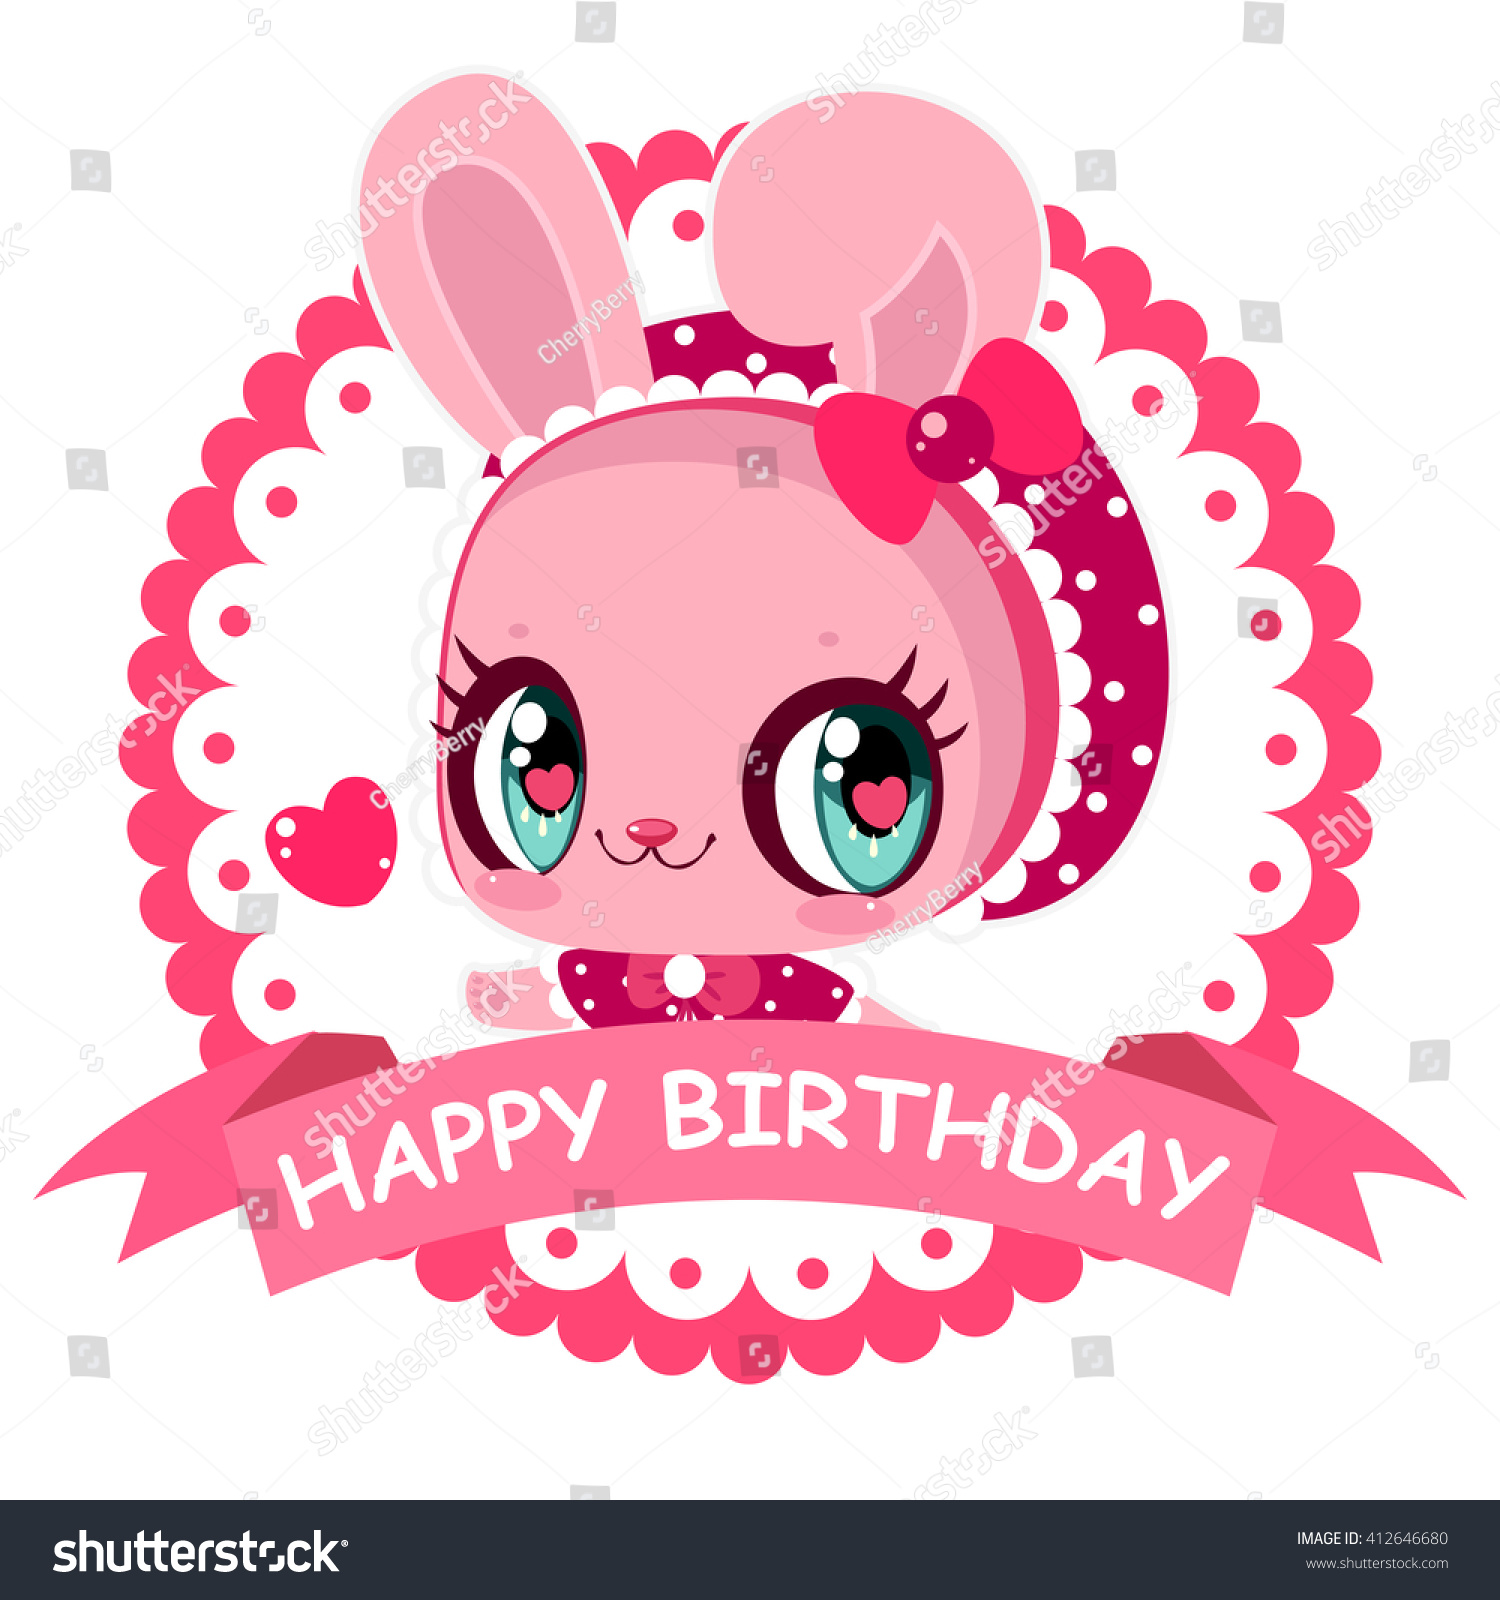 sweet little bunny card happy birthday banner pink girl greeting card with bunny